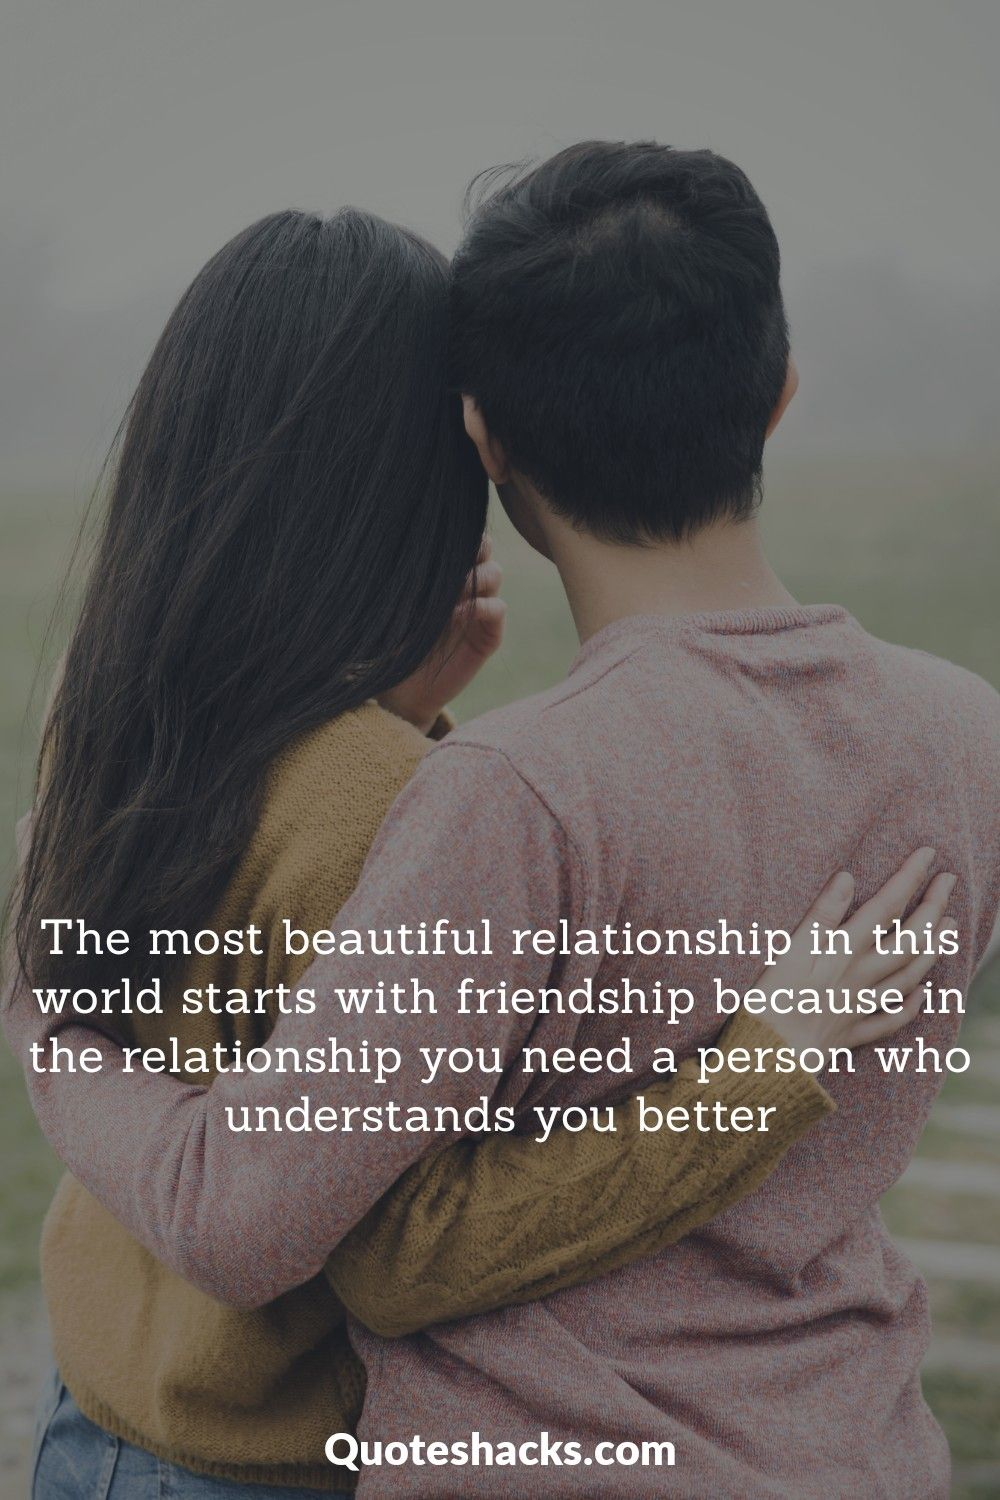 25 Romantic Falling In Love With Best Friend Quotes Friend Love Quotes Guy Friend Quotes Best Friend Love Quotes